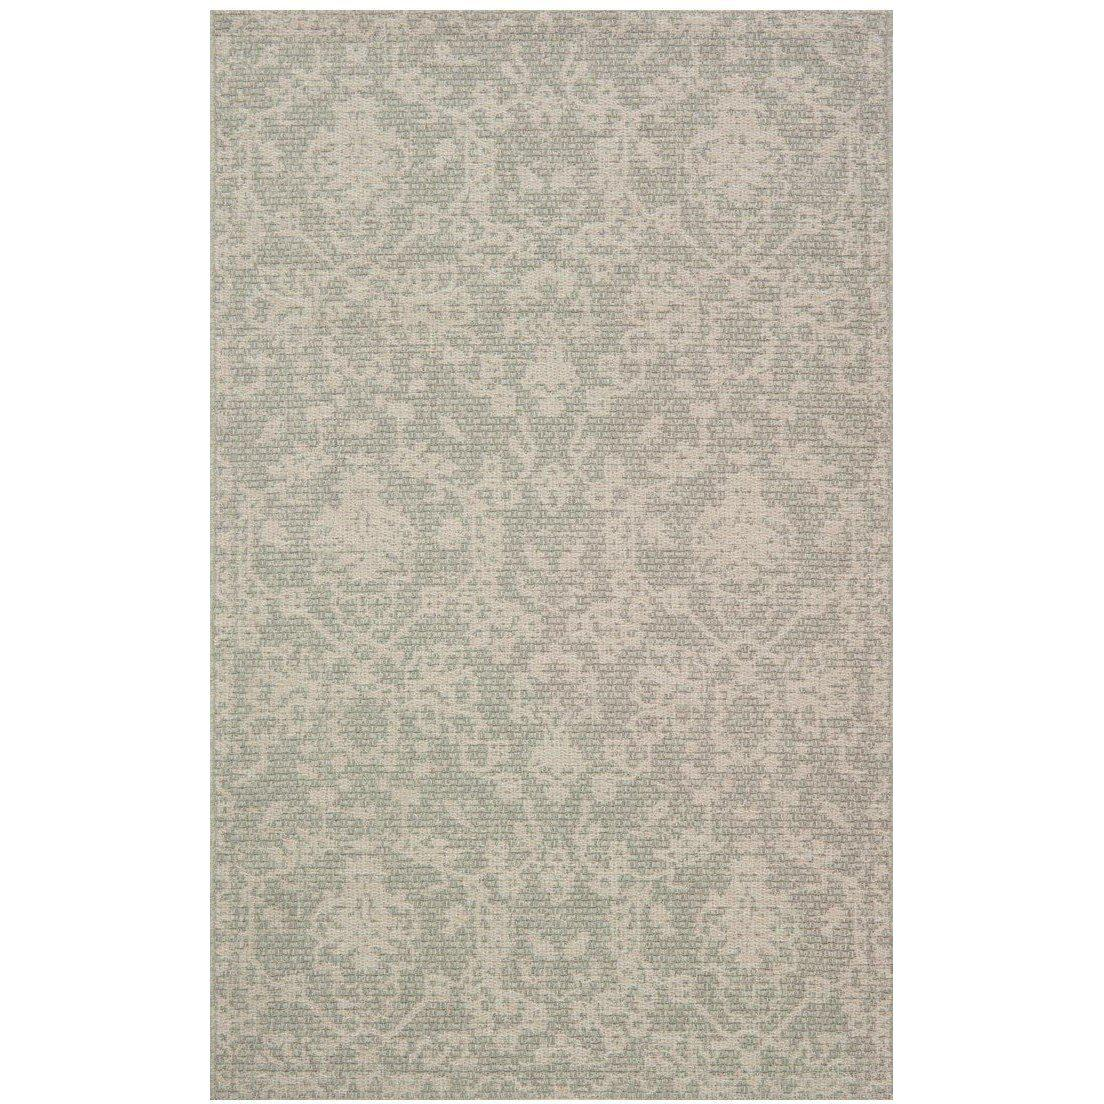 Joanna Gaines Magnolia Home Rug - Warwick Collection - Grey / Silver